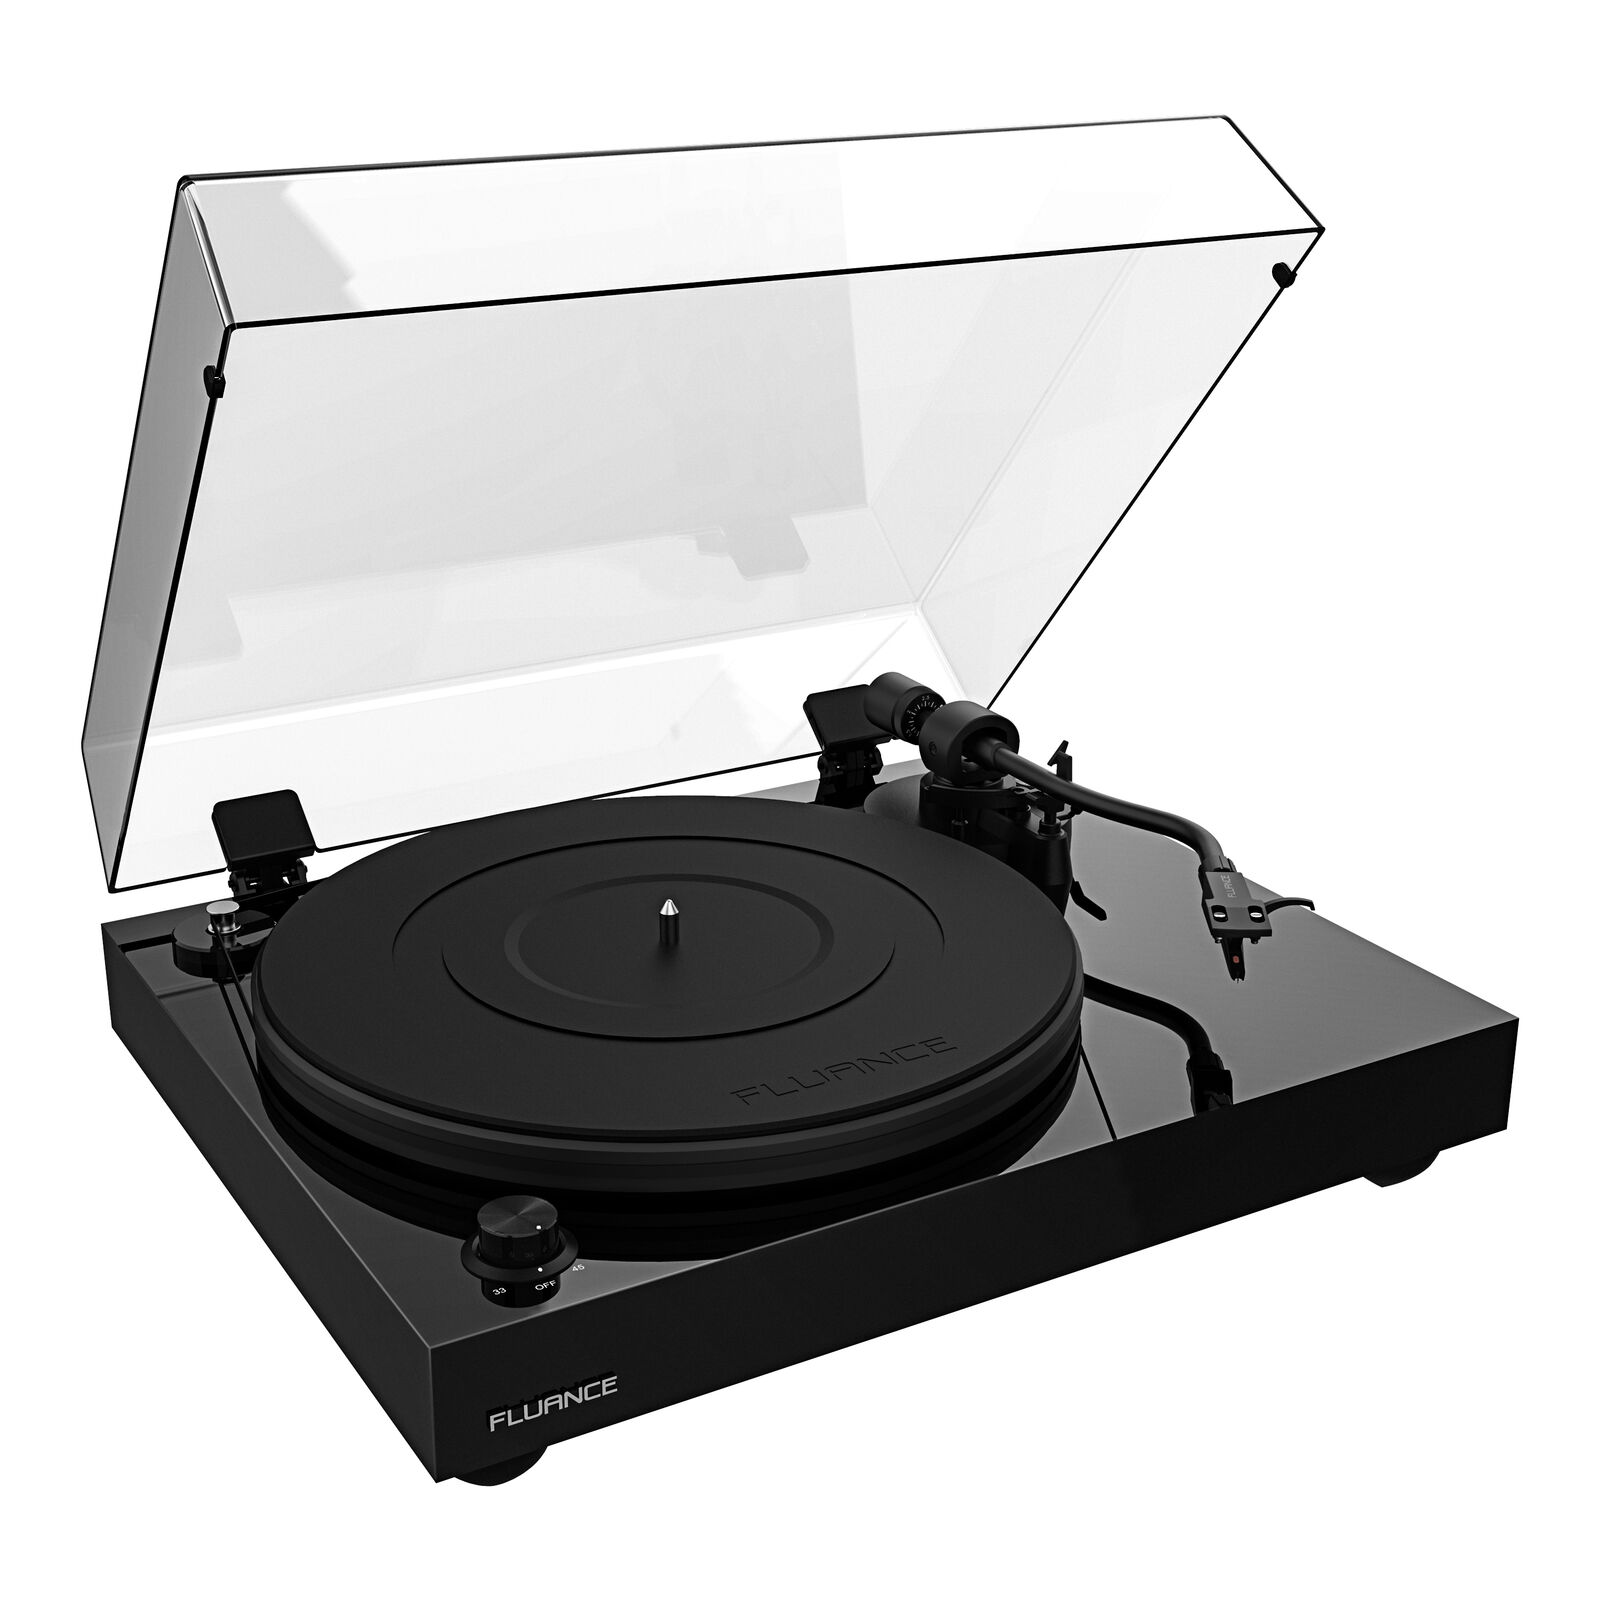 Fluance Reference High Fidelity Vinyl Turntable Record Player Ortofon Cartridge. Buy it now for 299.99